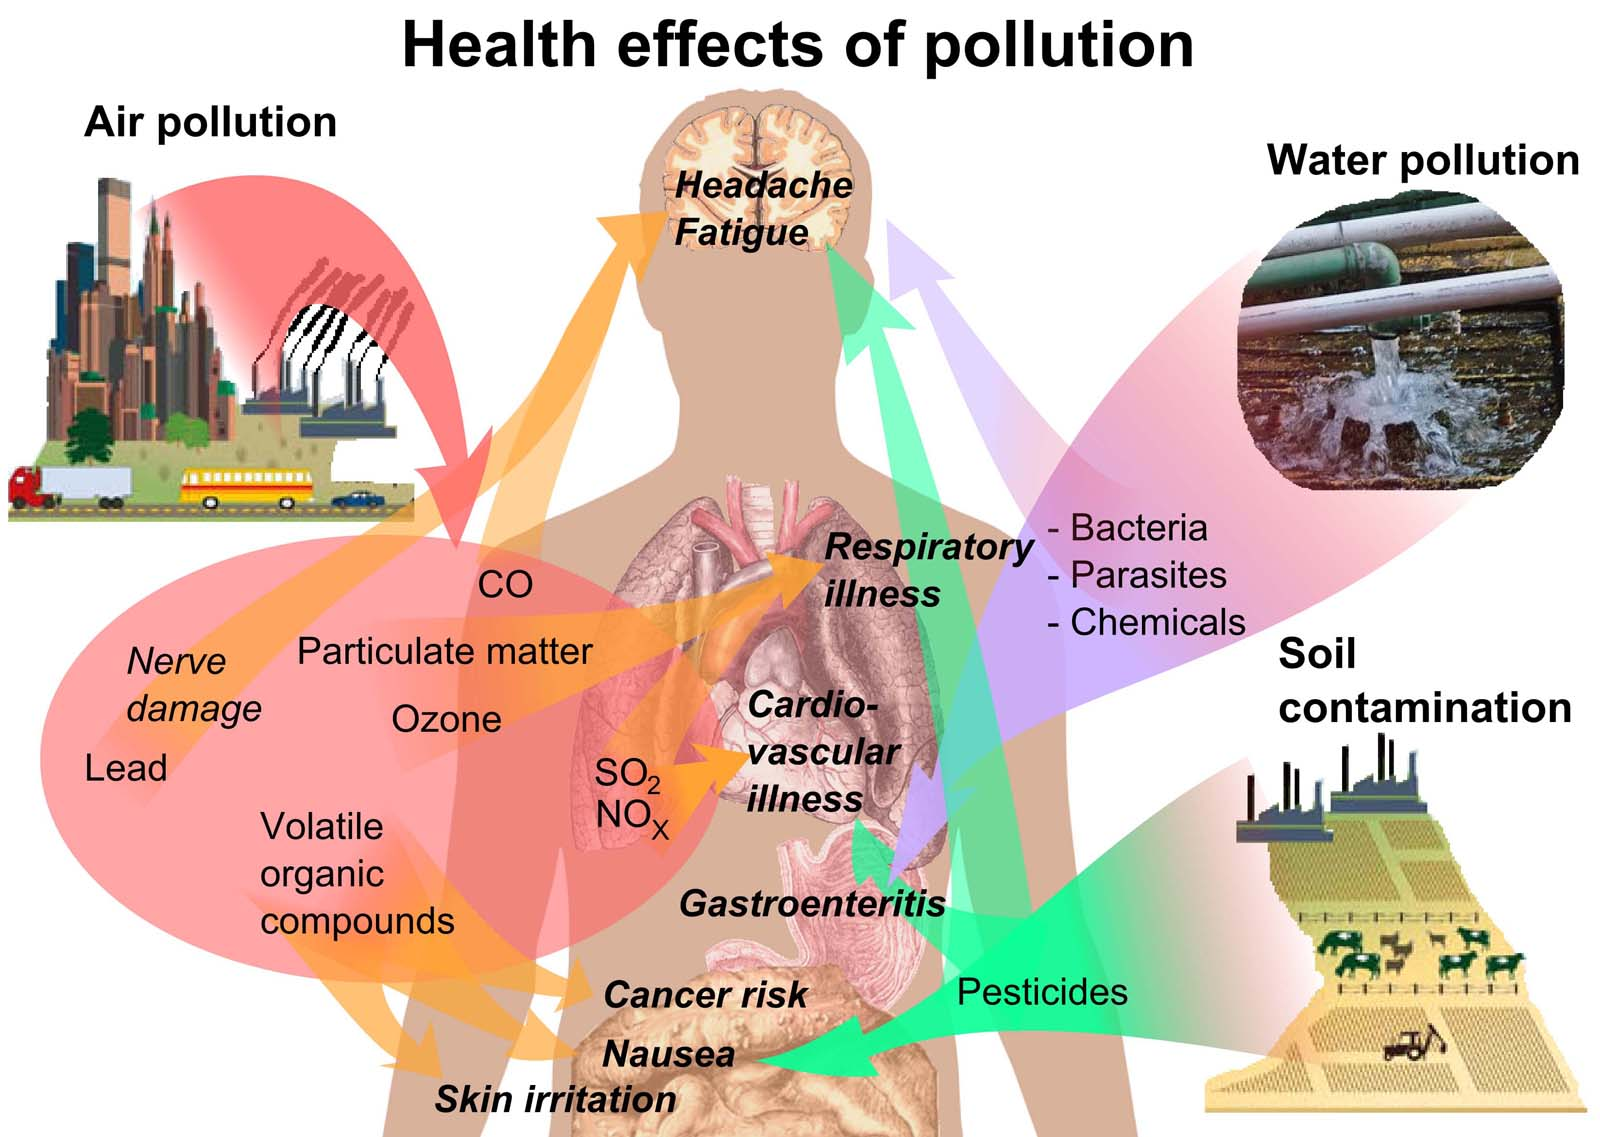 There are many different health effects on humans from pollution